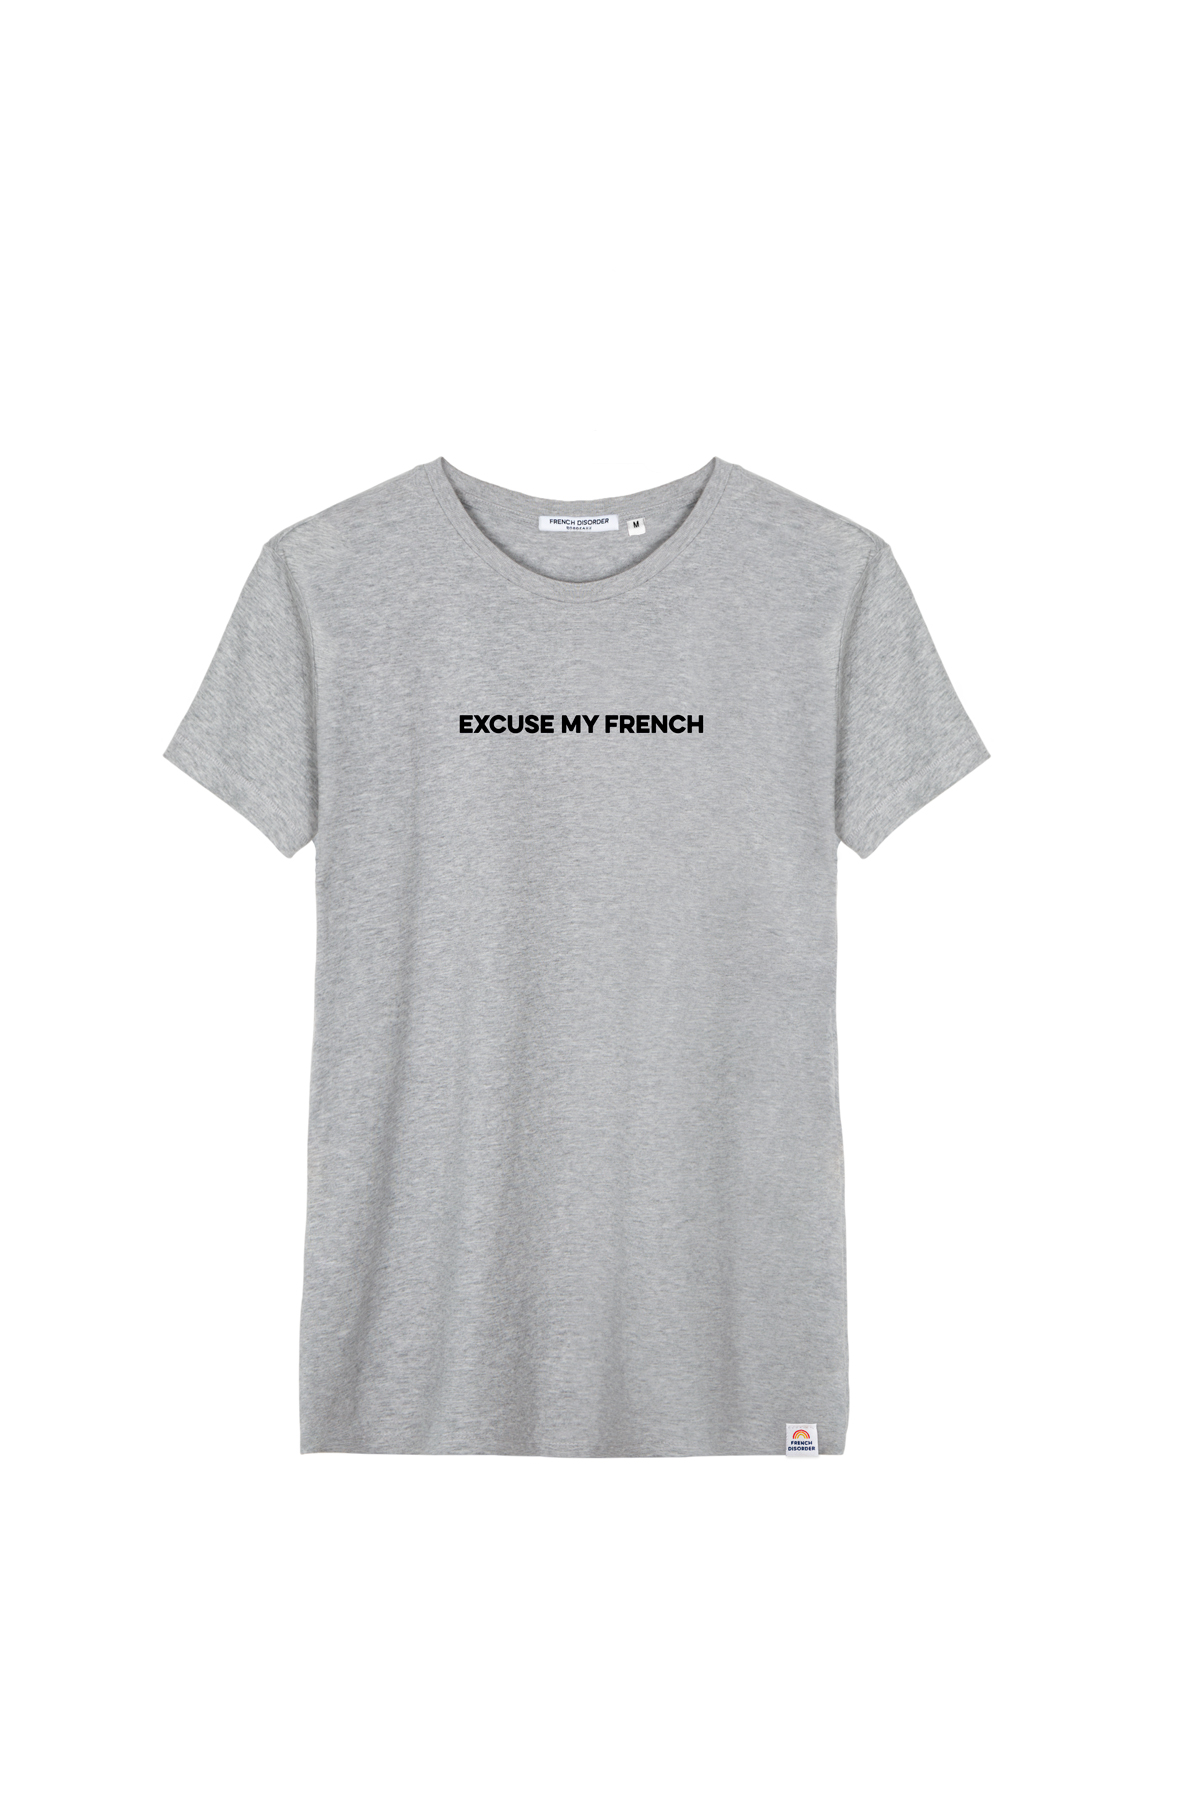 T-shirt EXCUSE MY FRENCH French Disorder